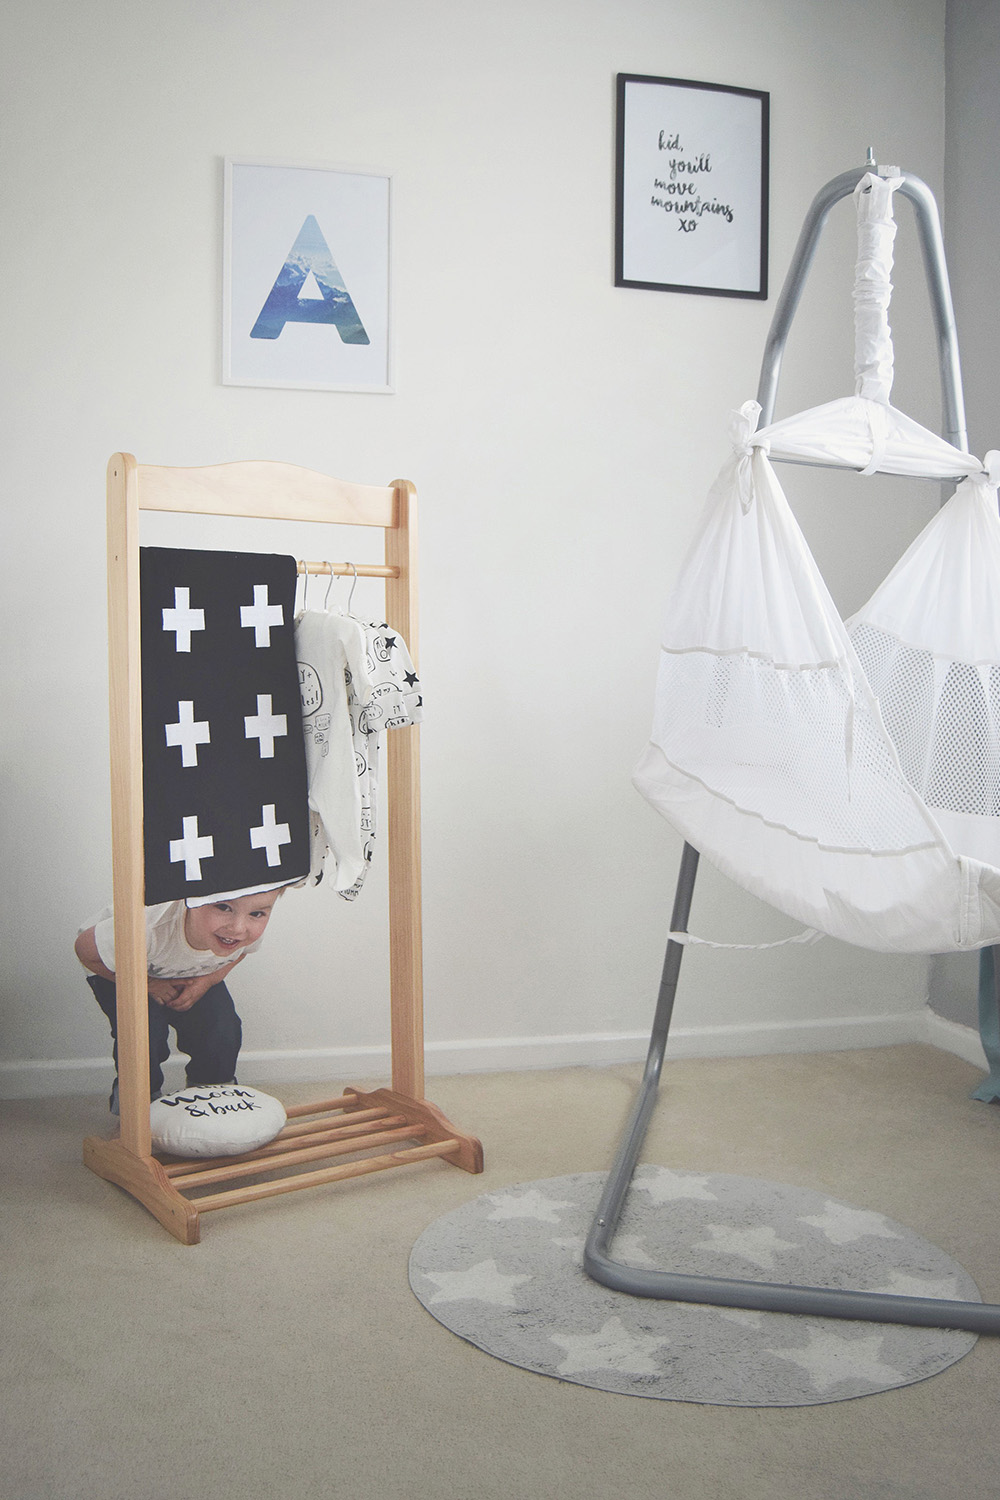 The Poco Baby Hammock; A modern sleep solution for newborn babies - colic, trapped wind relief